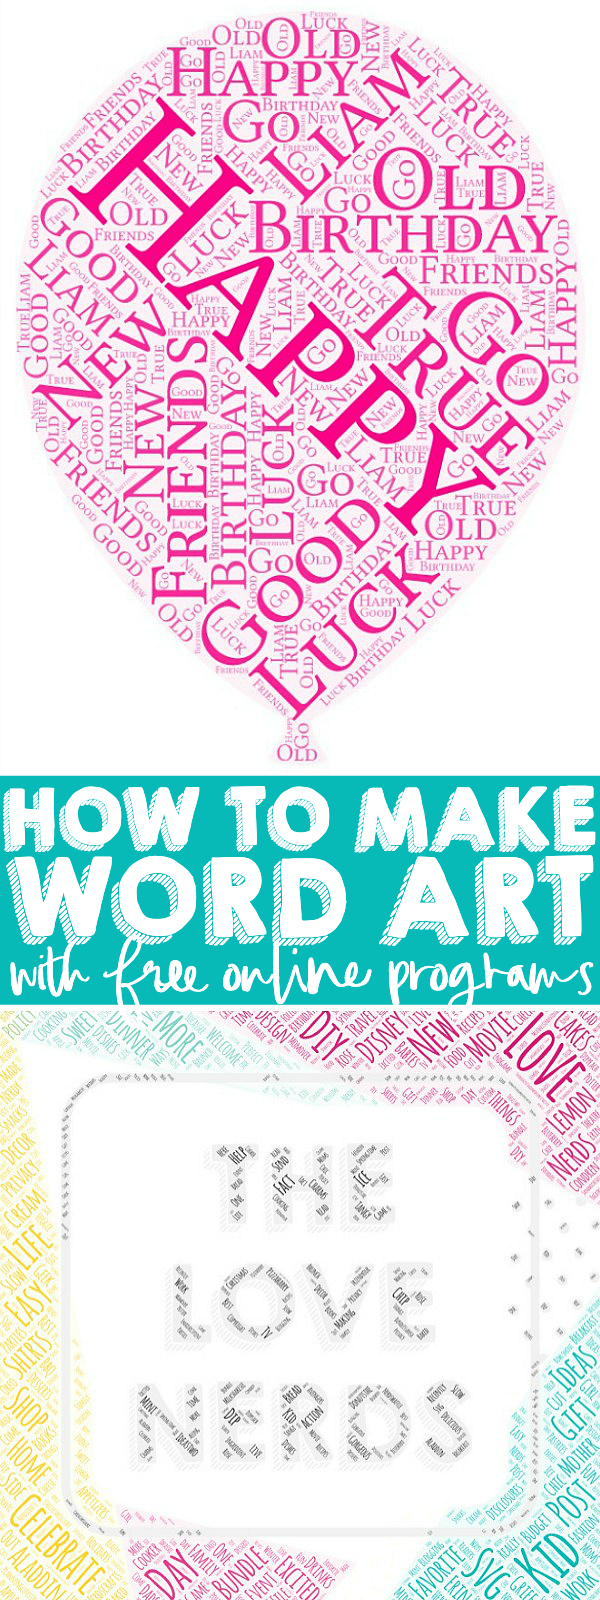 How to Make Free Word Art Online in Fun Shapes - The easiest online program for making your own shaped word art with detailed instructions on how to use the program! Perfect for holiday decorations, school projects, baby shower decorations, birthday cards and more! | THE LOVE NERDS